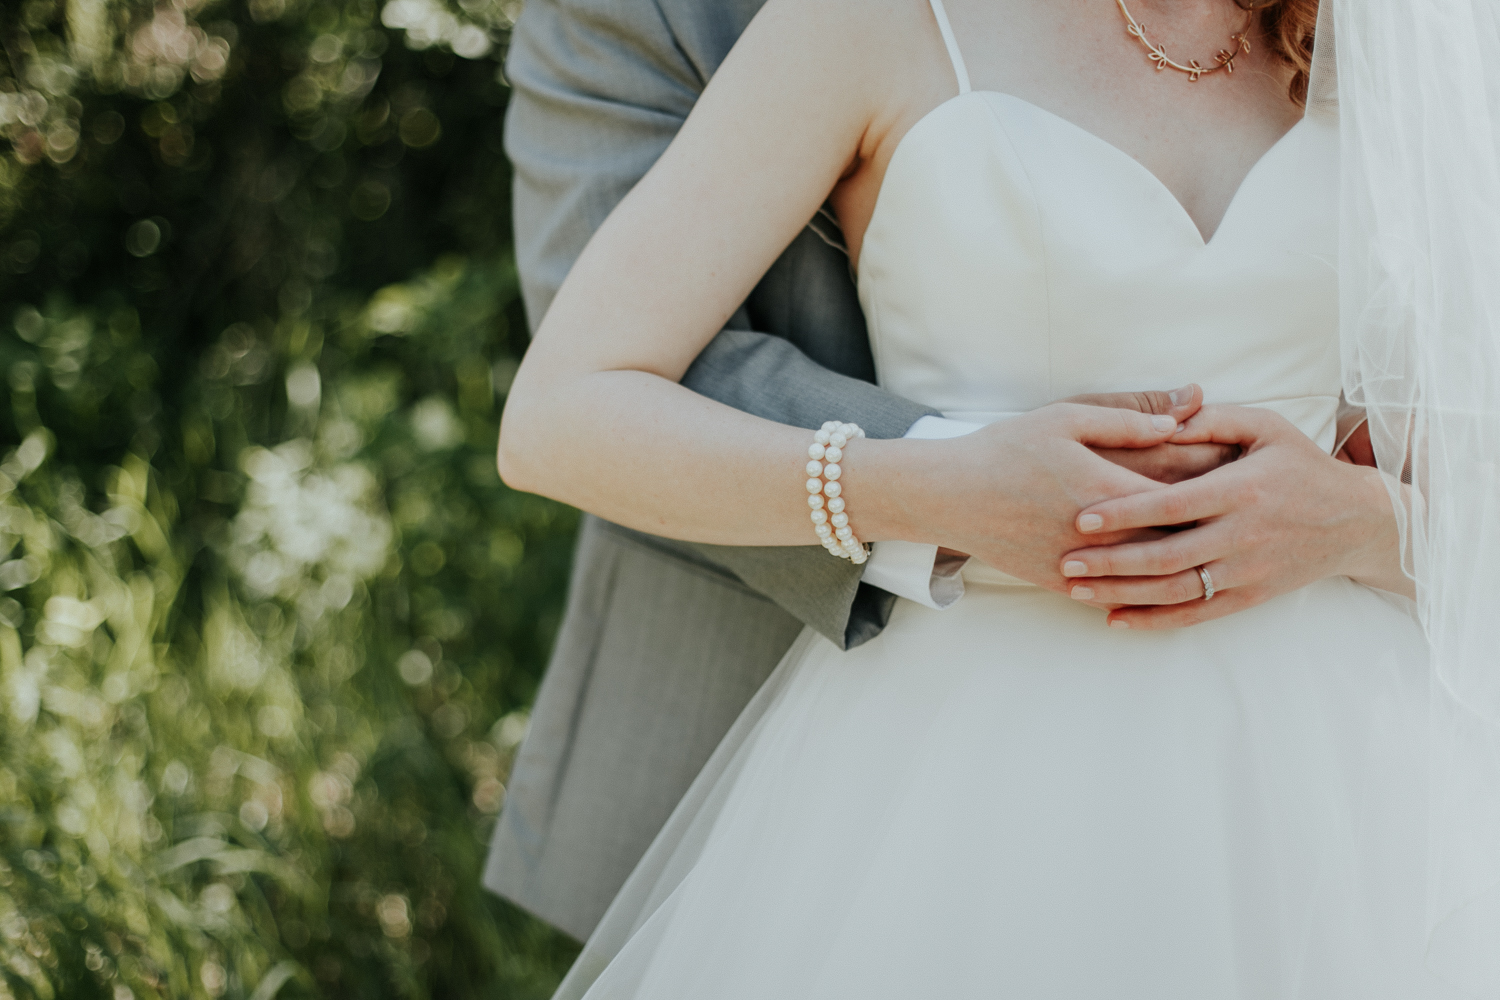 lethbridge-wedding-photographer-love-and-be-loved-photography-dan-tynnea-picture-image-photo-54.jpg